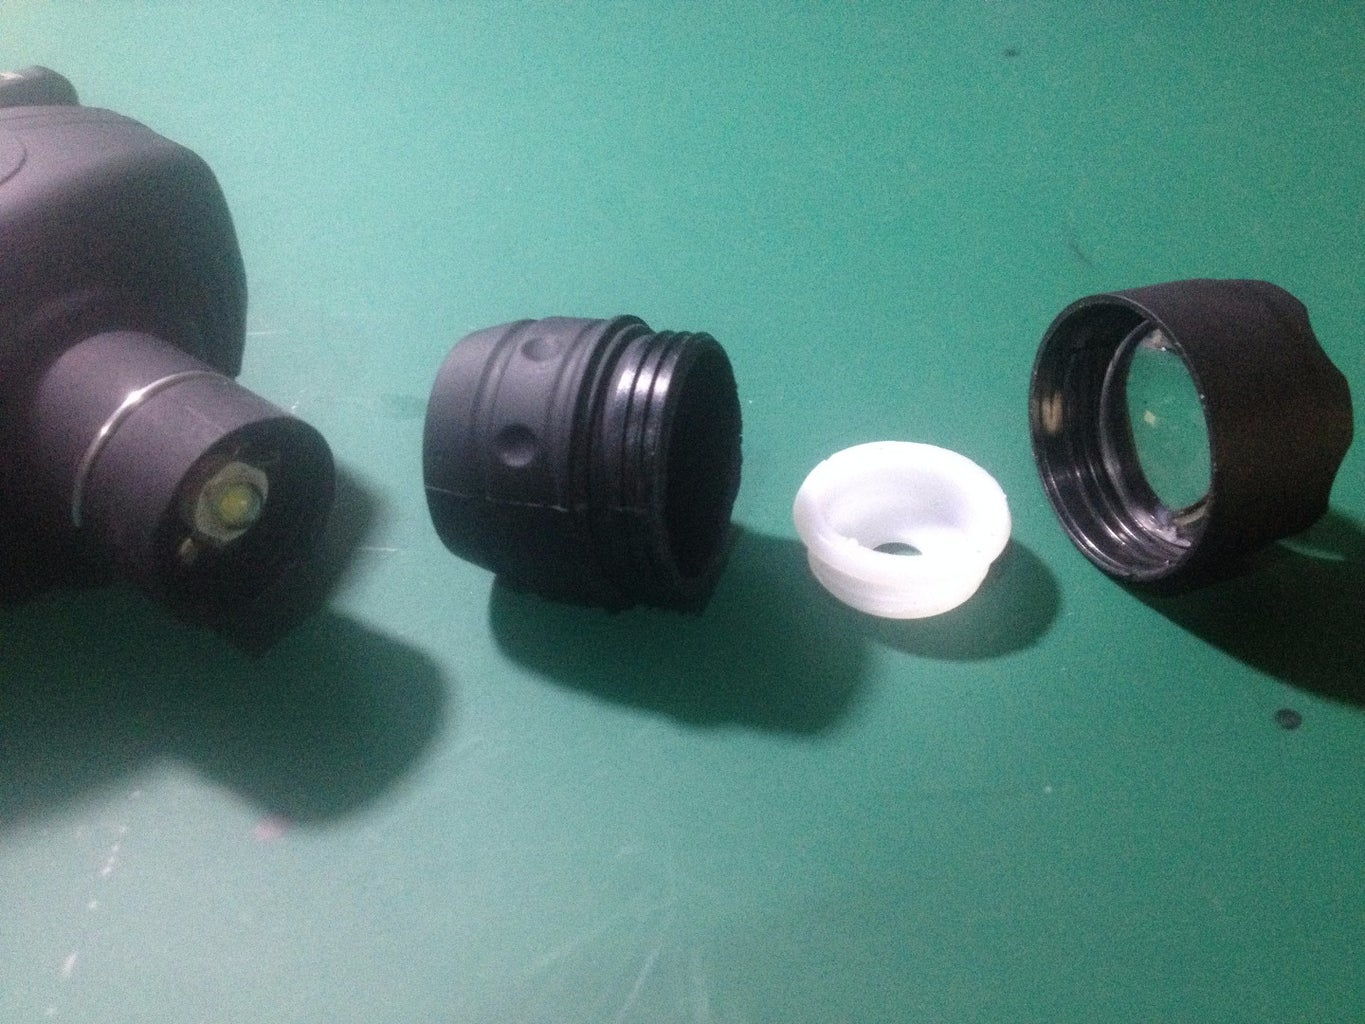 Disassembling the Head Torch